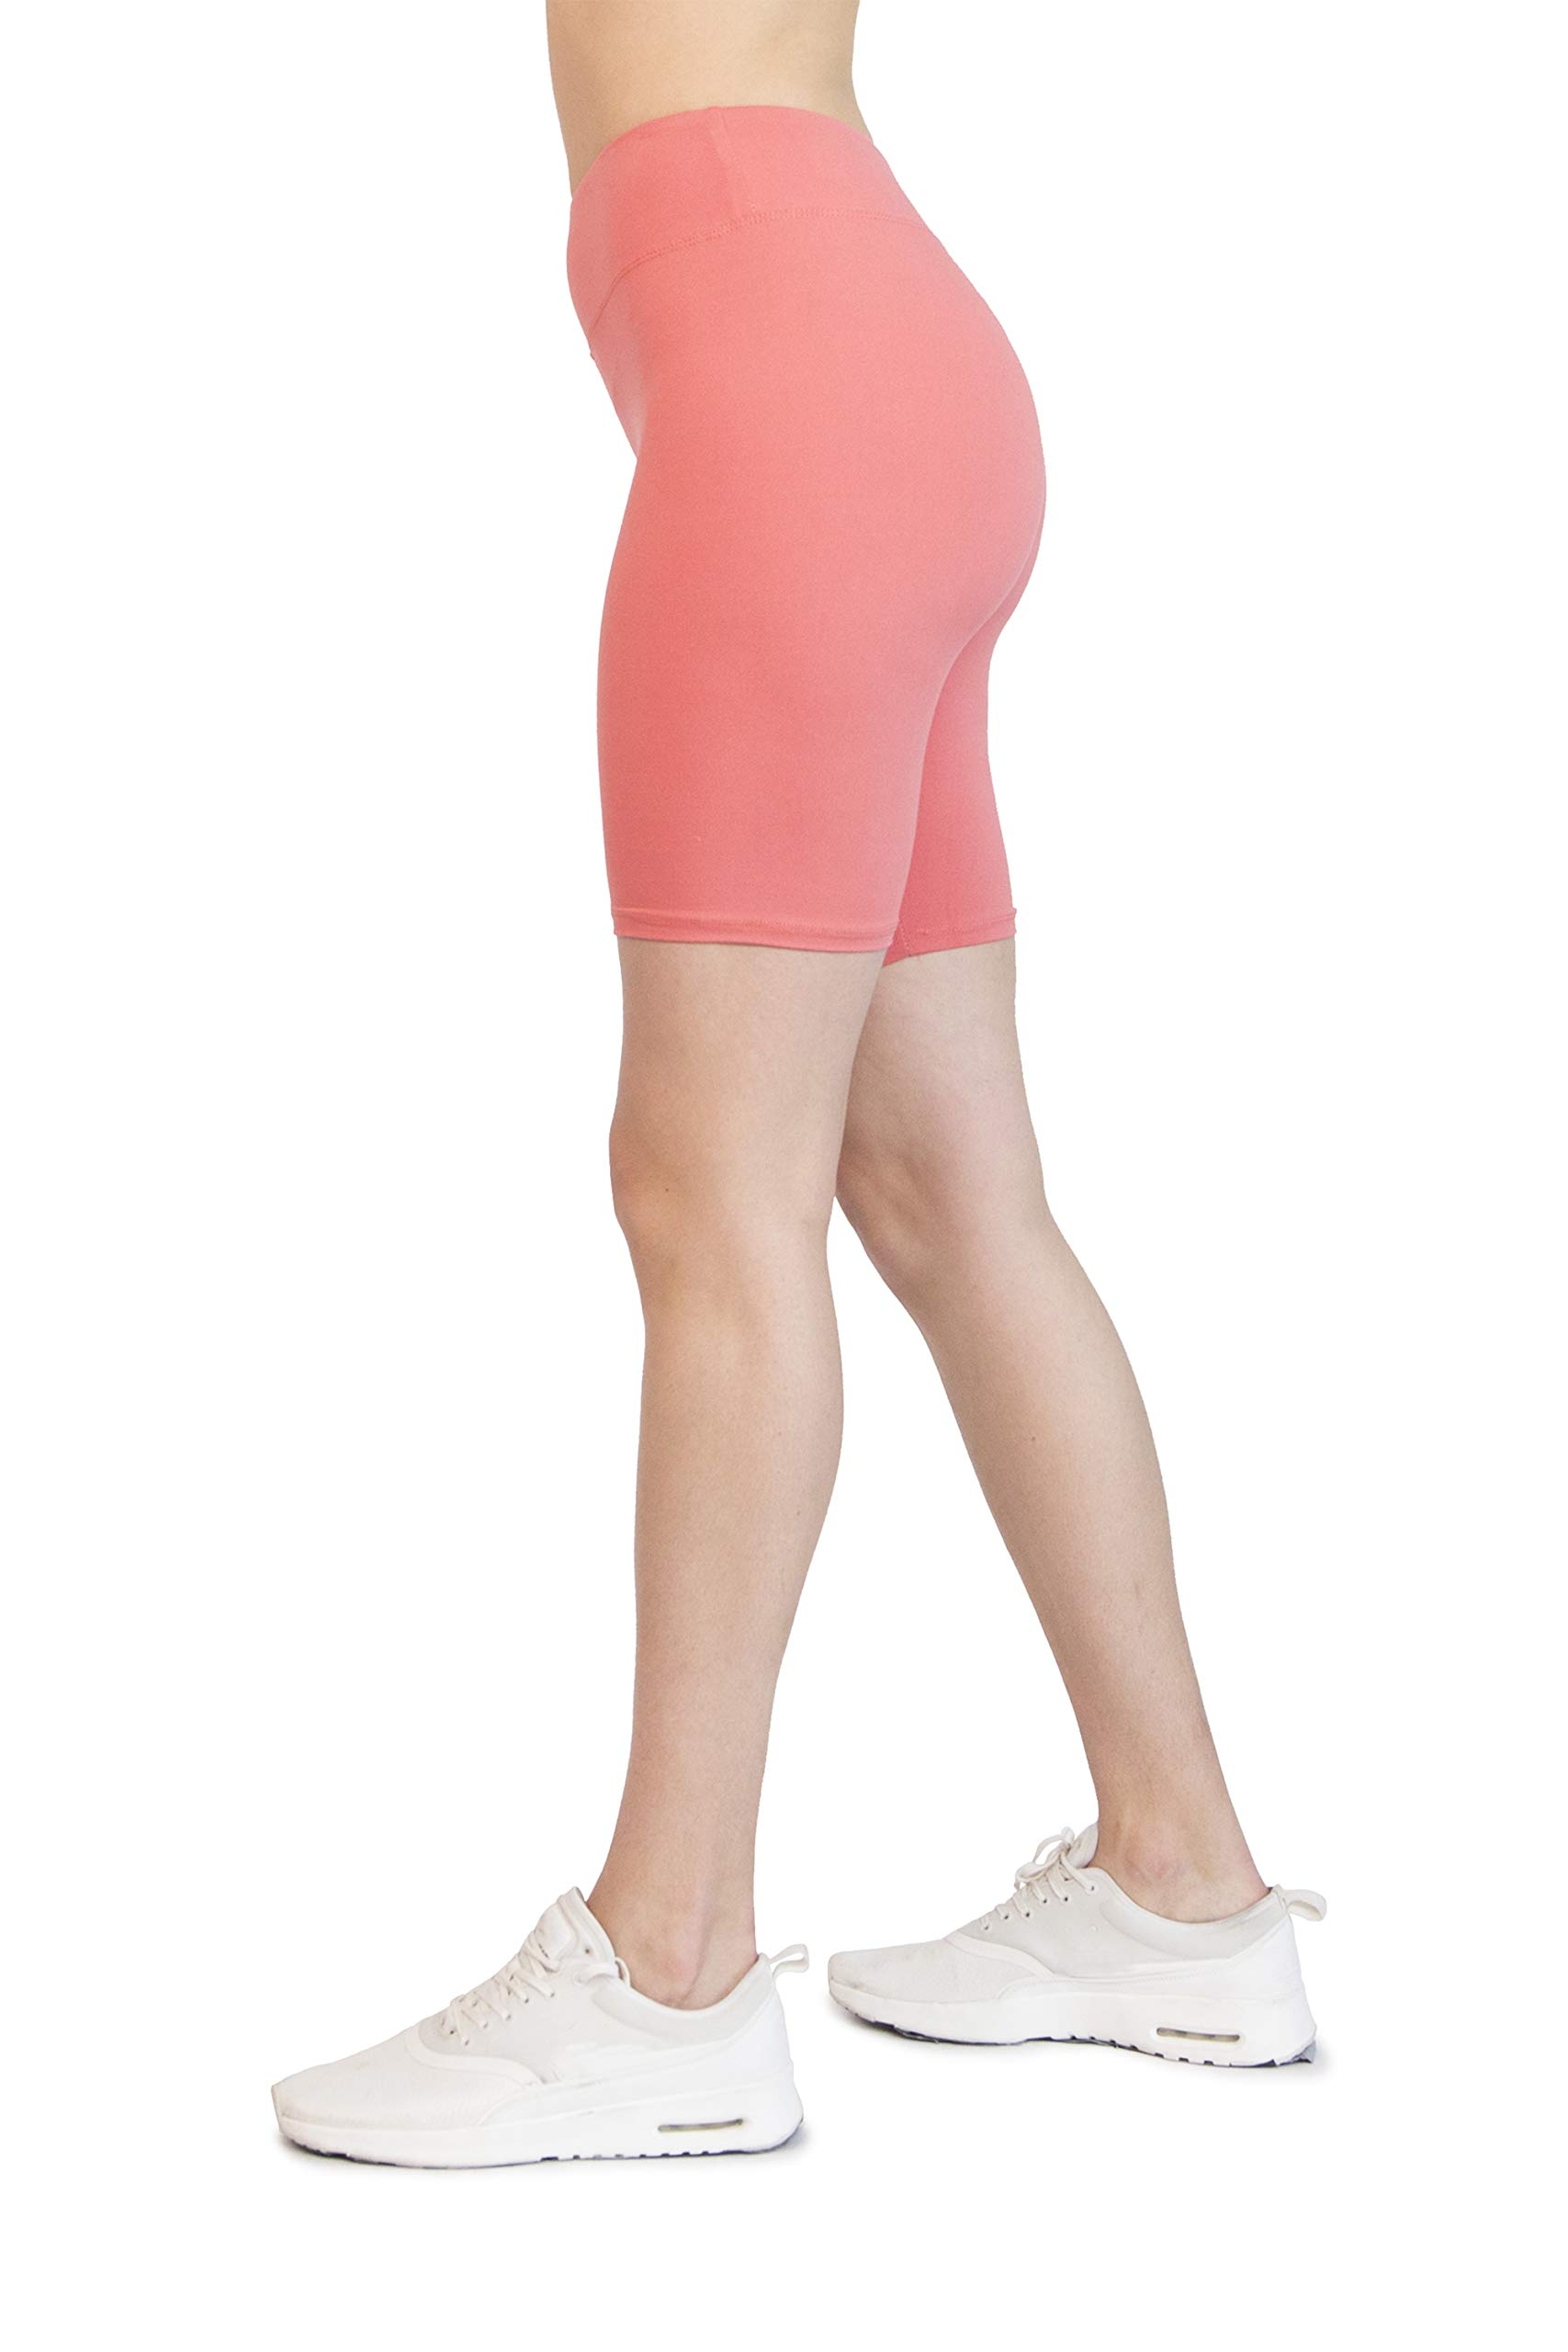 Ocommo Biker Shorts for Women High Waist (3 Inch), Great as Thigh Saver Shorts, Shorts for Under Dresses, or Biker Shorts Women - Small to Plus Size 2XL Neon Coral by OCOMMO